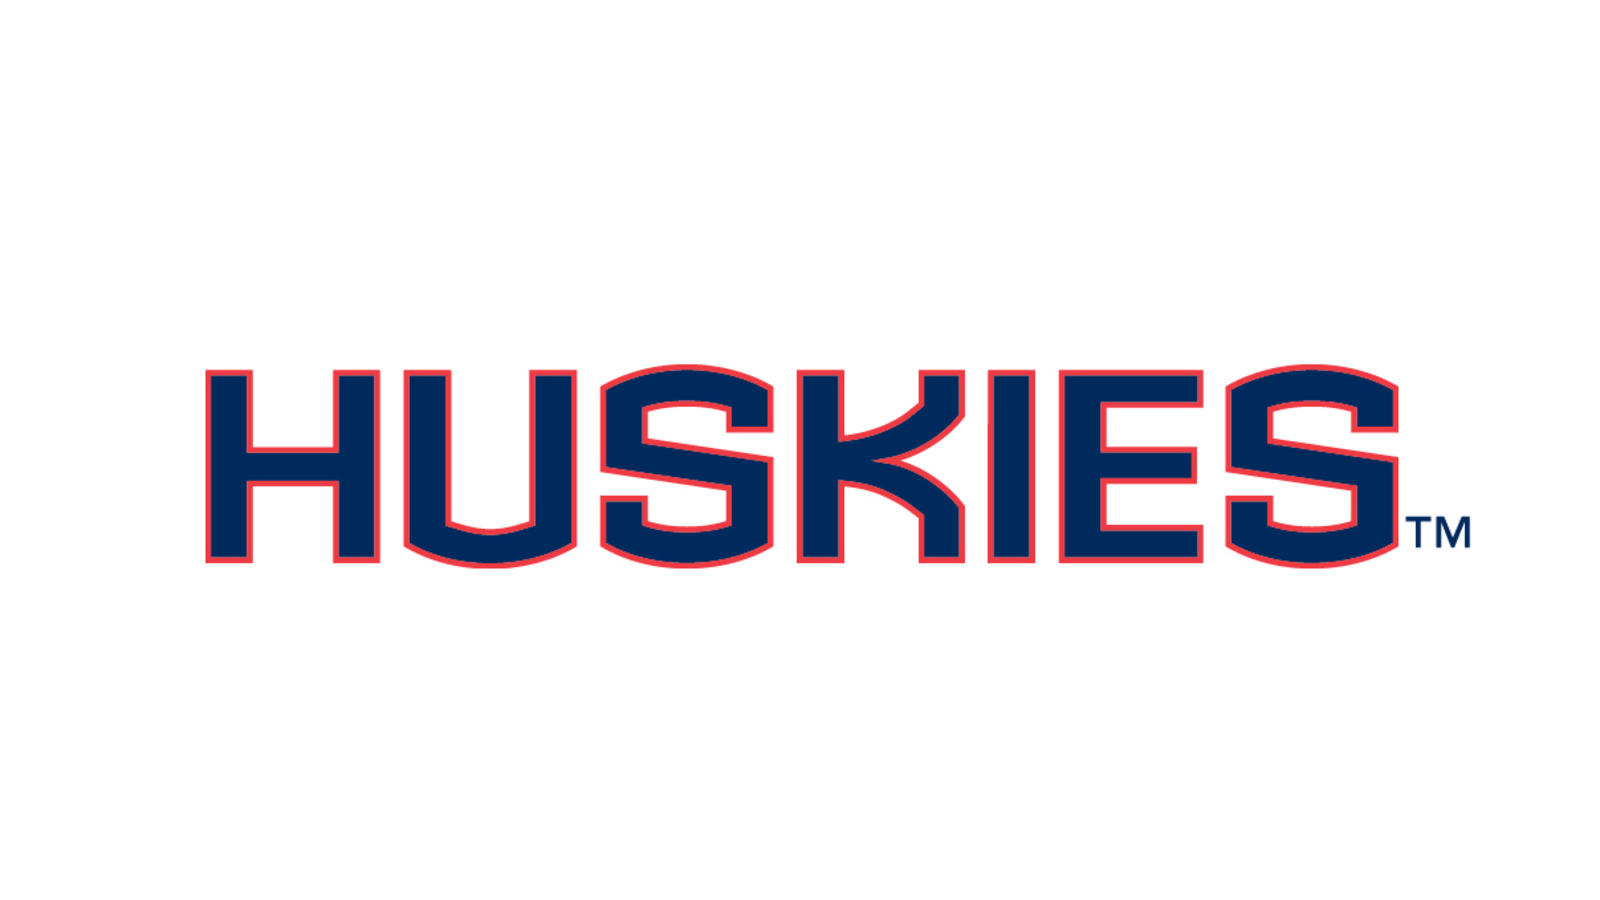 uconn updates visual identity and new uniforms for huskies nike news rh news nike com UConn Girls Basketball Logo UConn Women's Basketball Roster